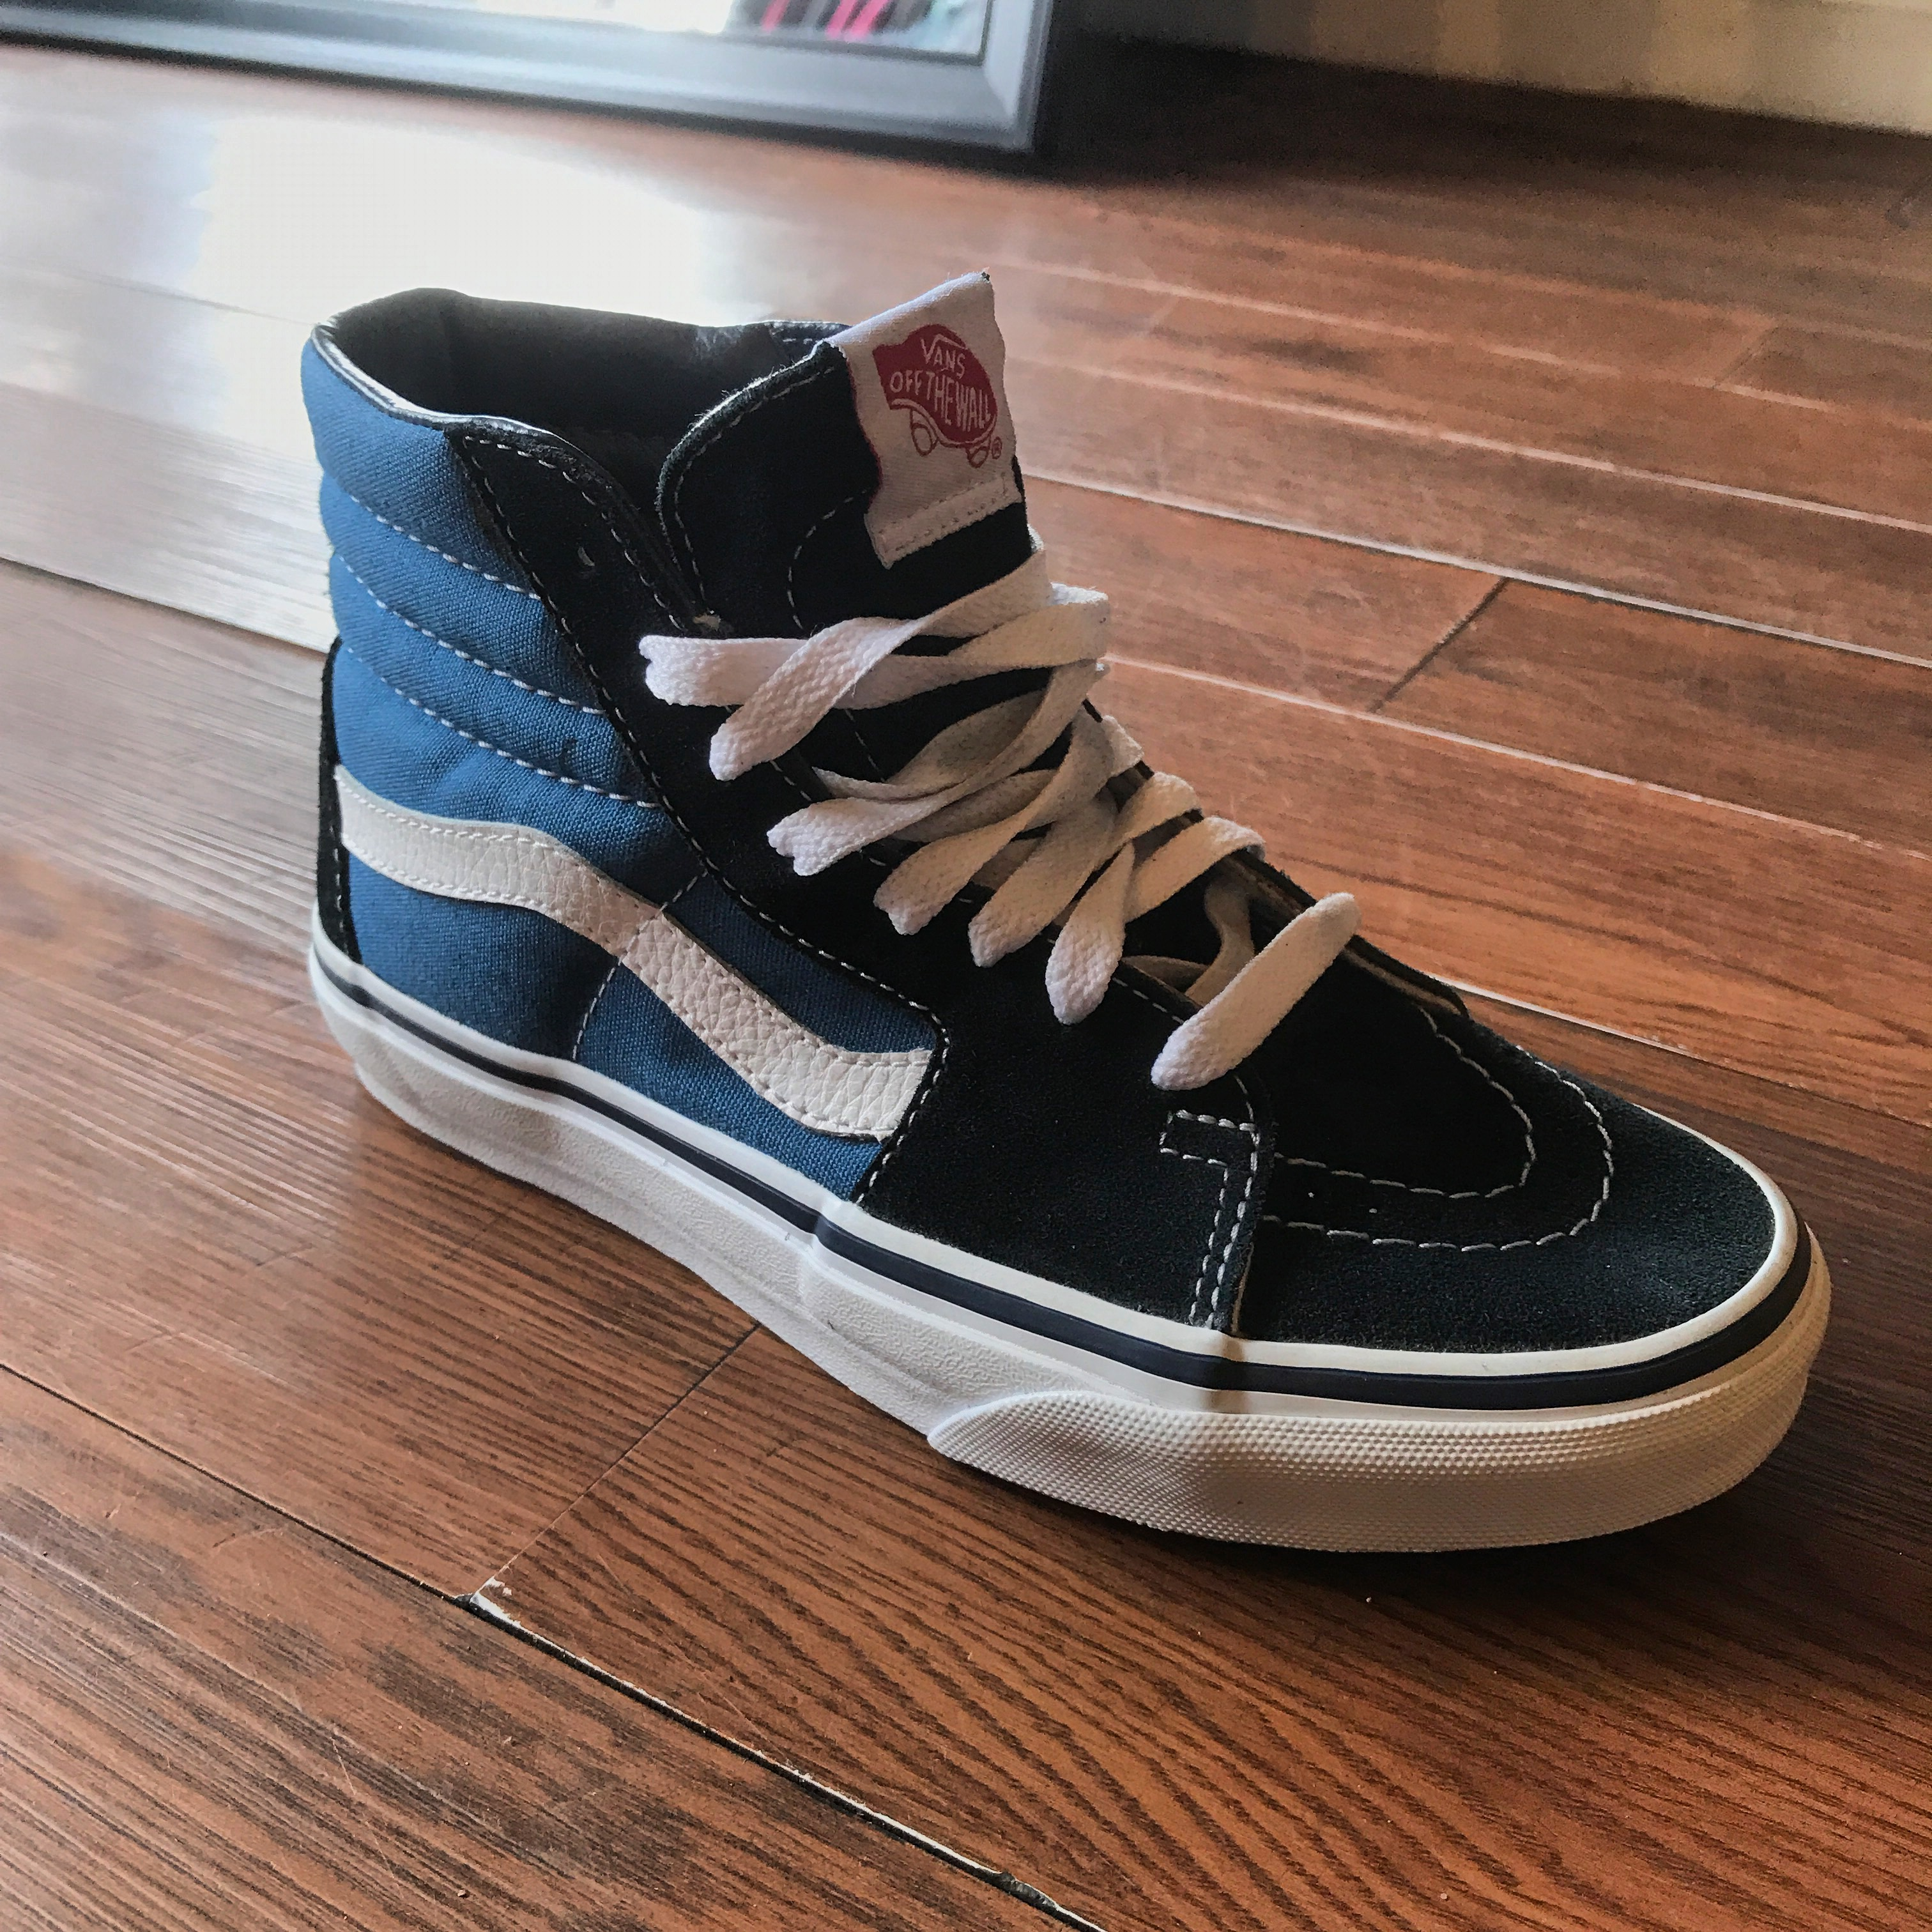 099dc868e74746 Vans Classic Sk8 Hi In Navy Just Came In At Both Shop Locations. vú ...